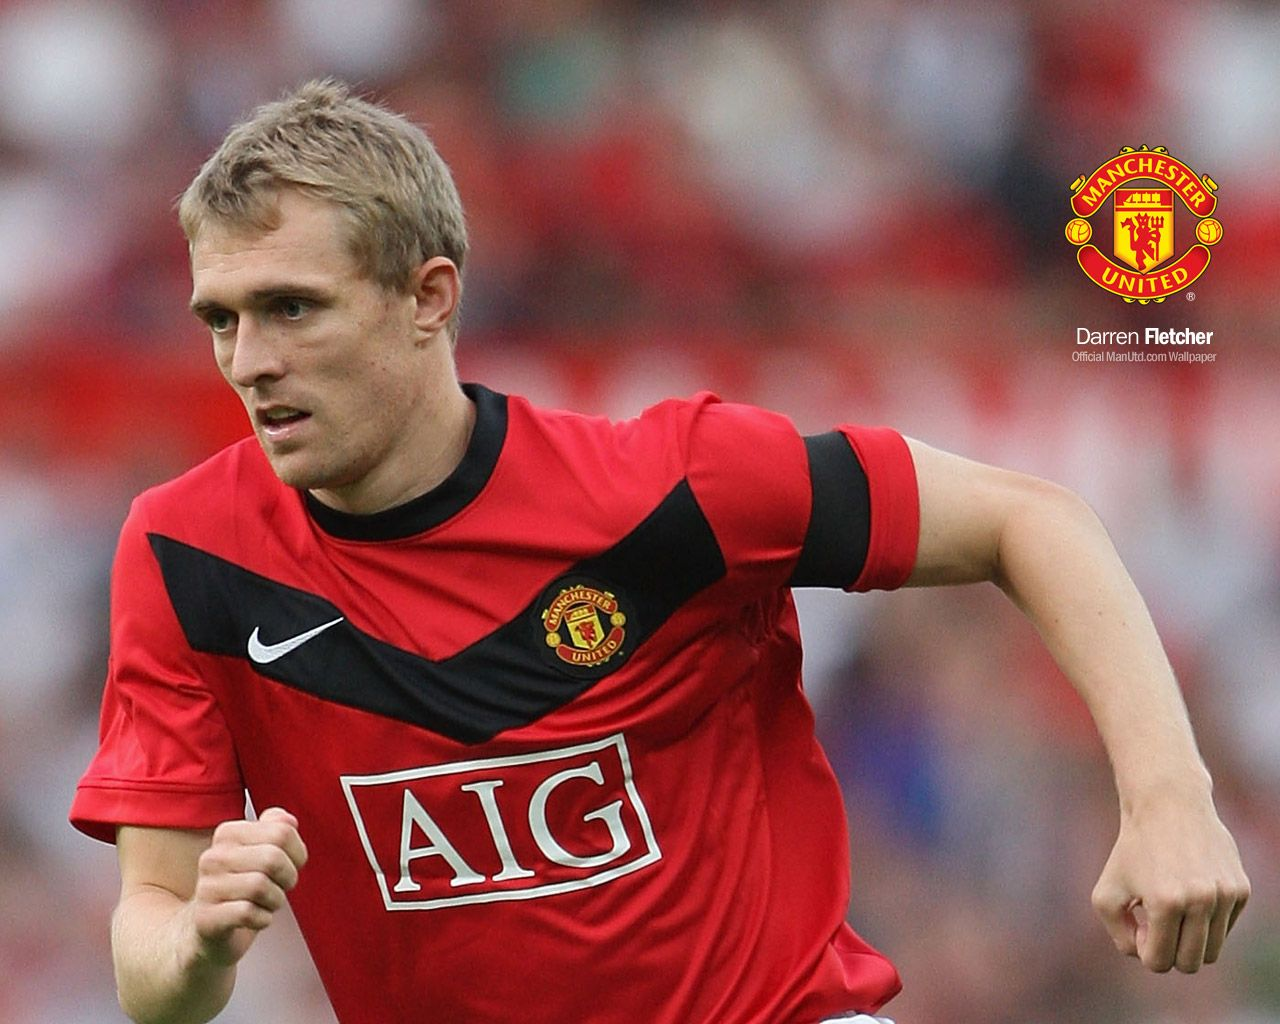 Darren Fletcher - Manchester United Wallpaper